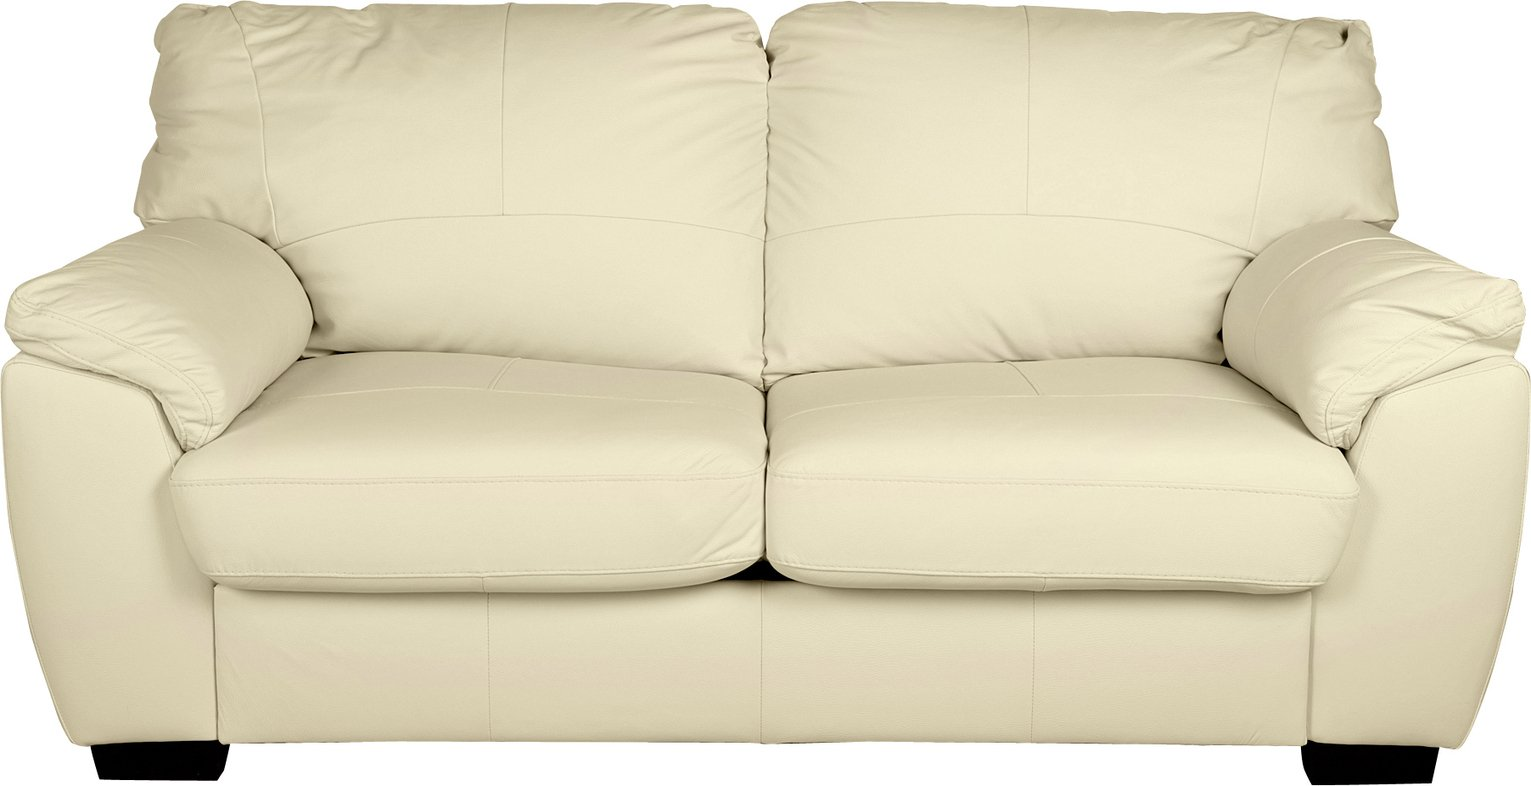 Sofa Settee Argos Buy Argos Home Milano 2 Seater Leather Sofa Bed Ivory